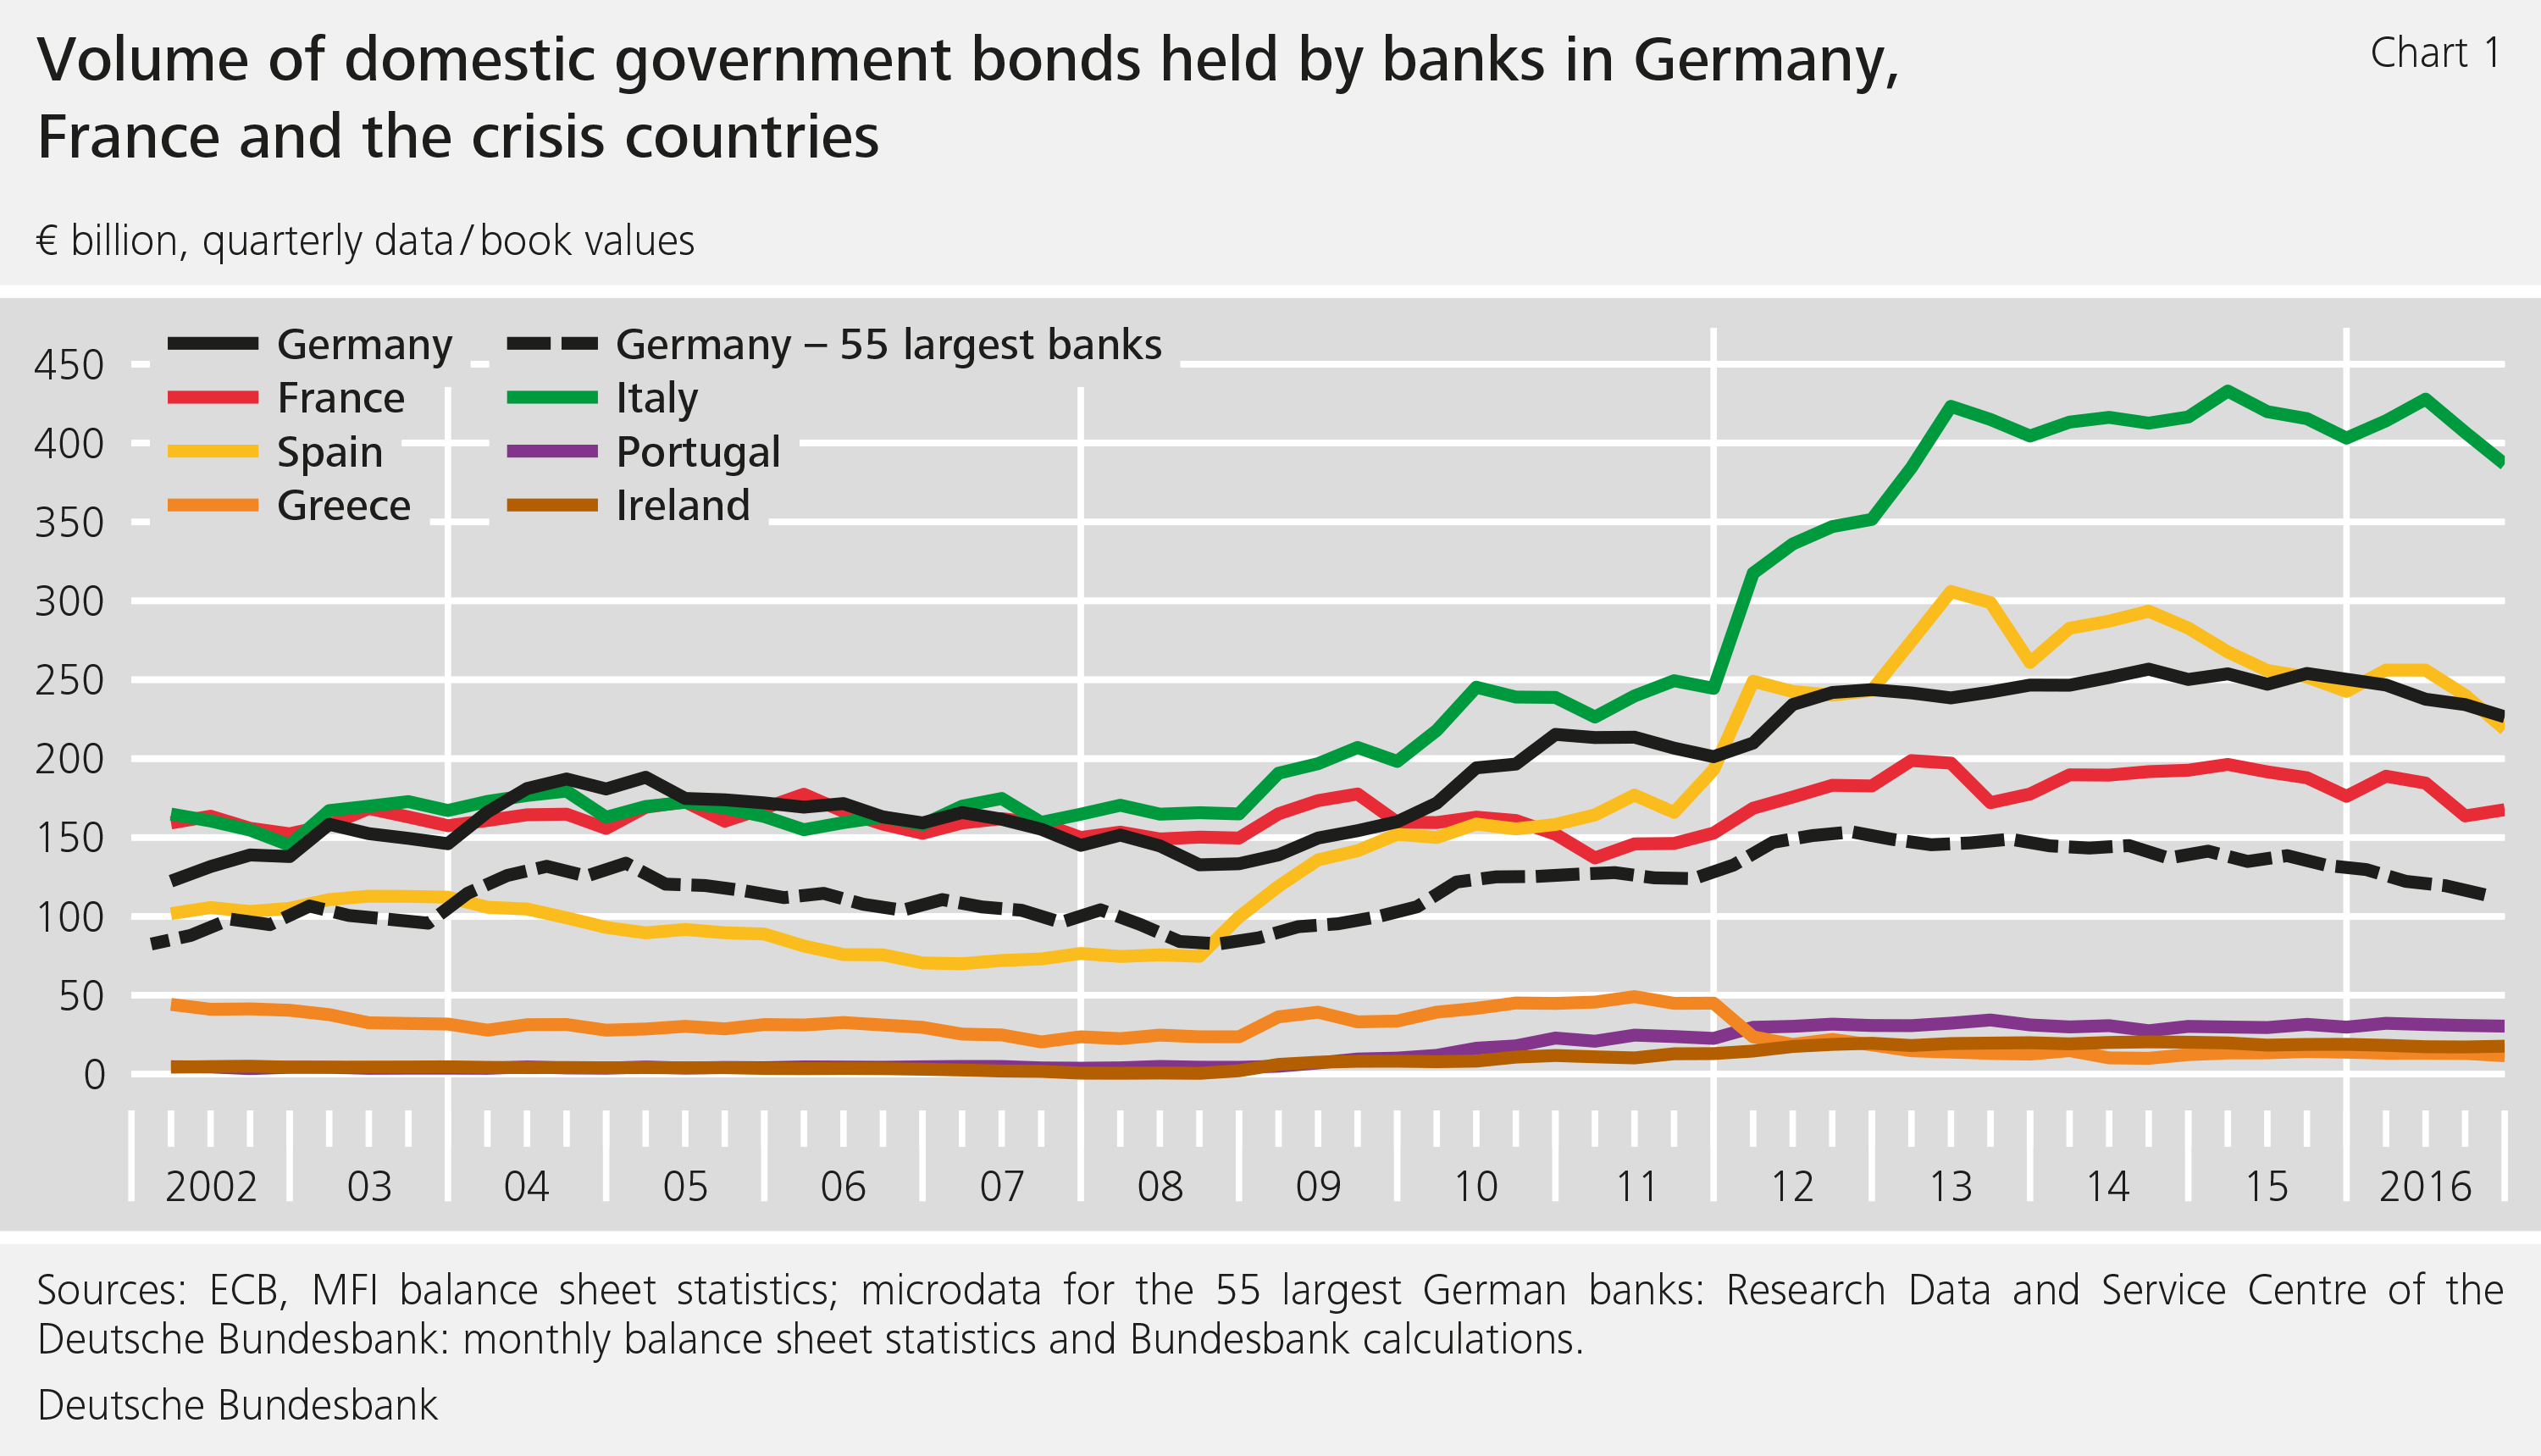 Chart 1: Volume of domestic government bonds held by banks in Germany, France and the crisis countries